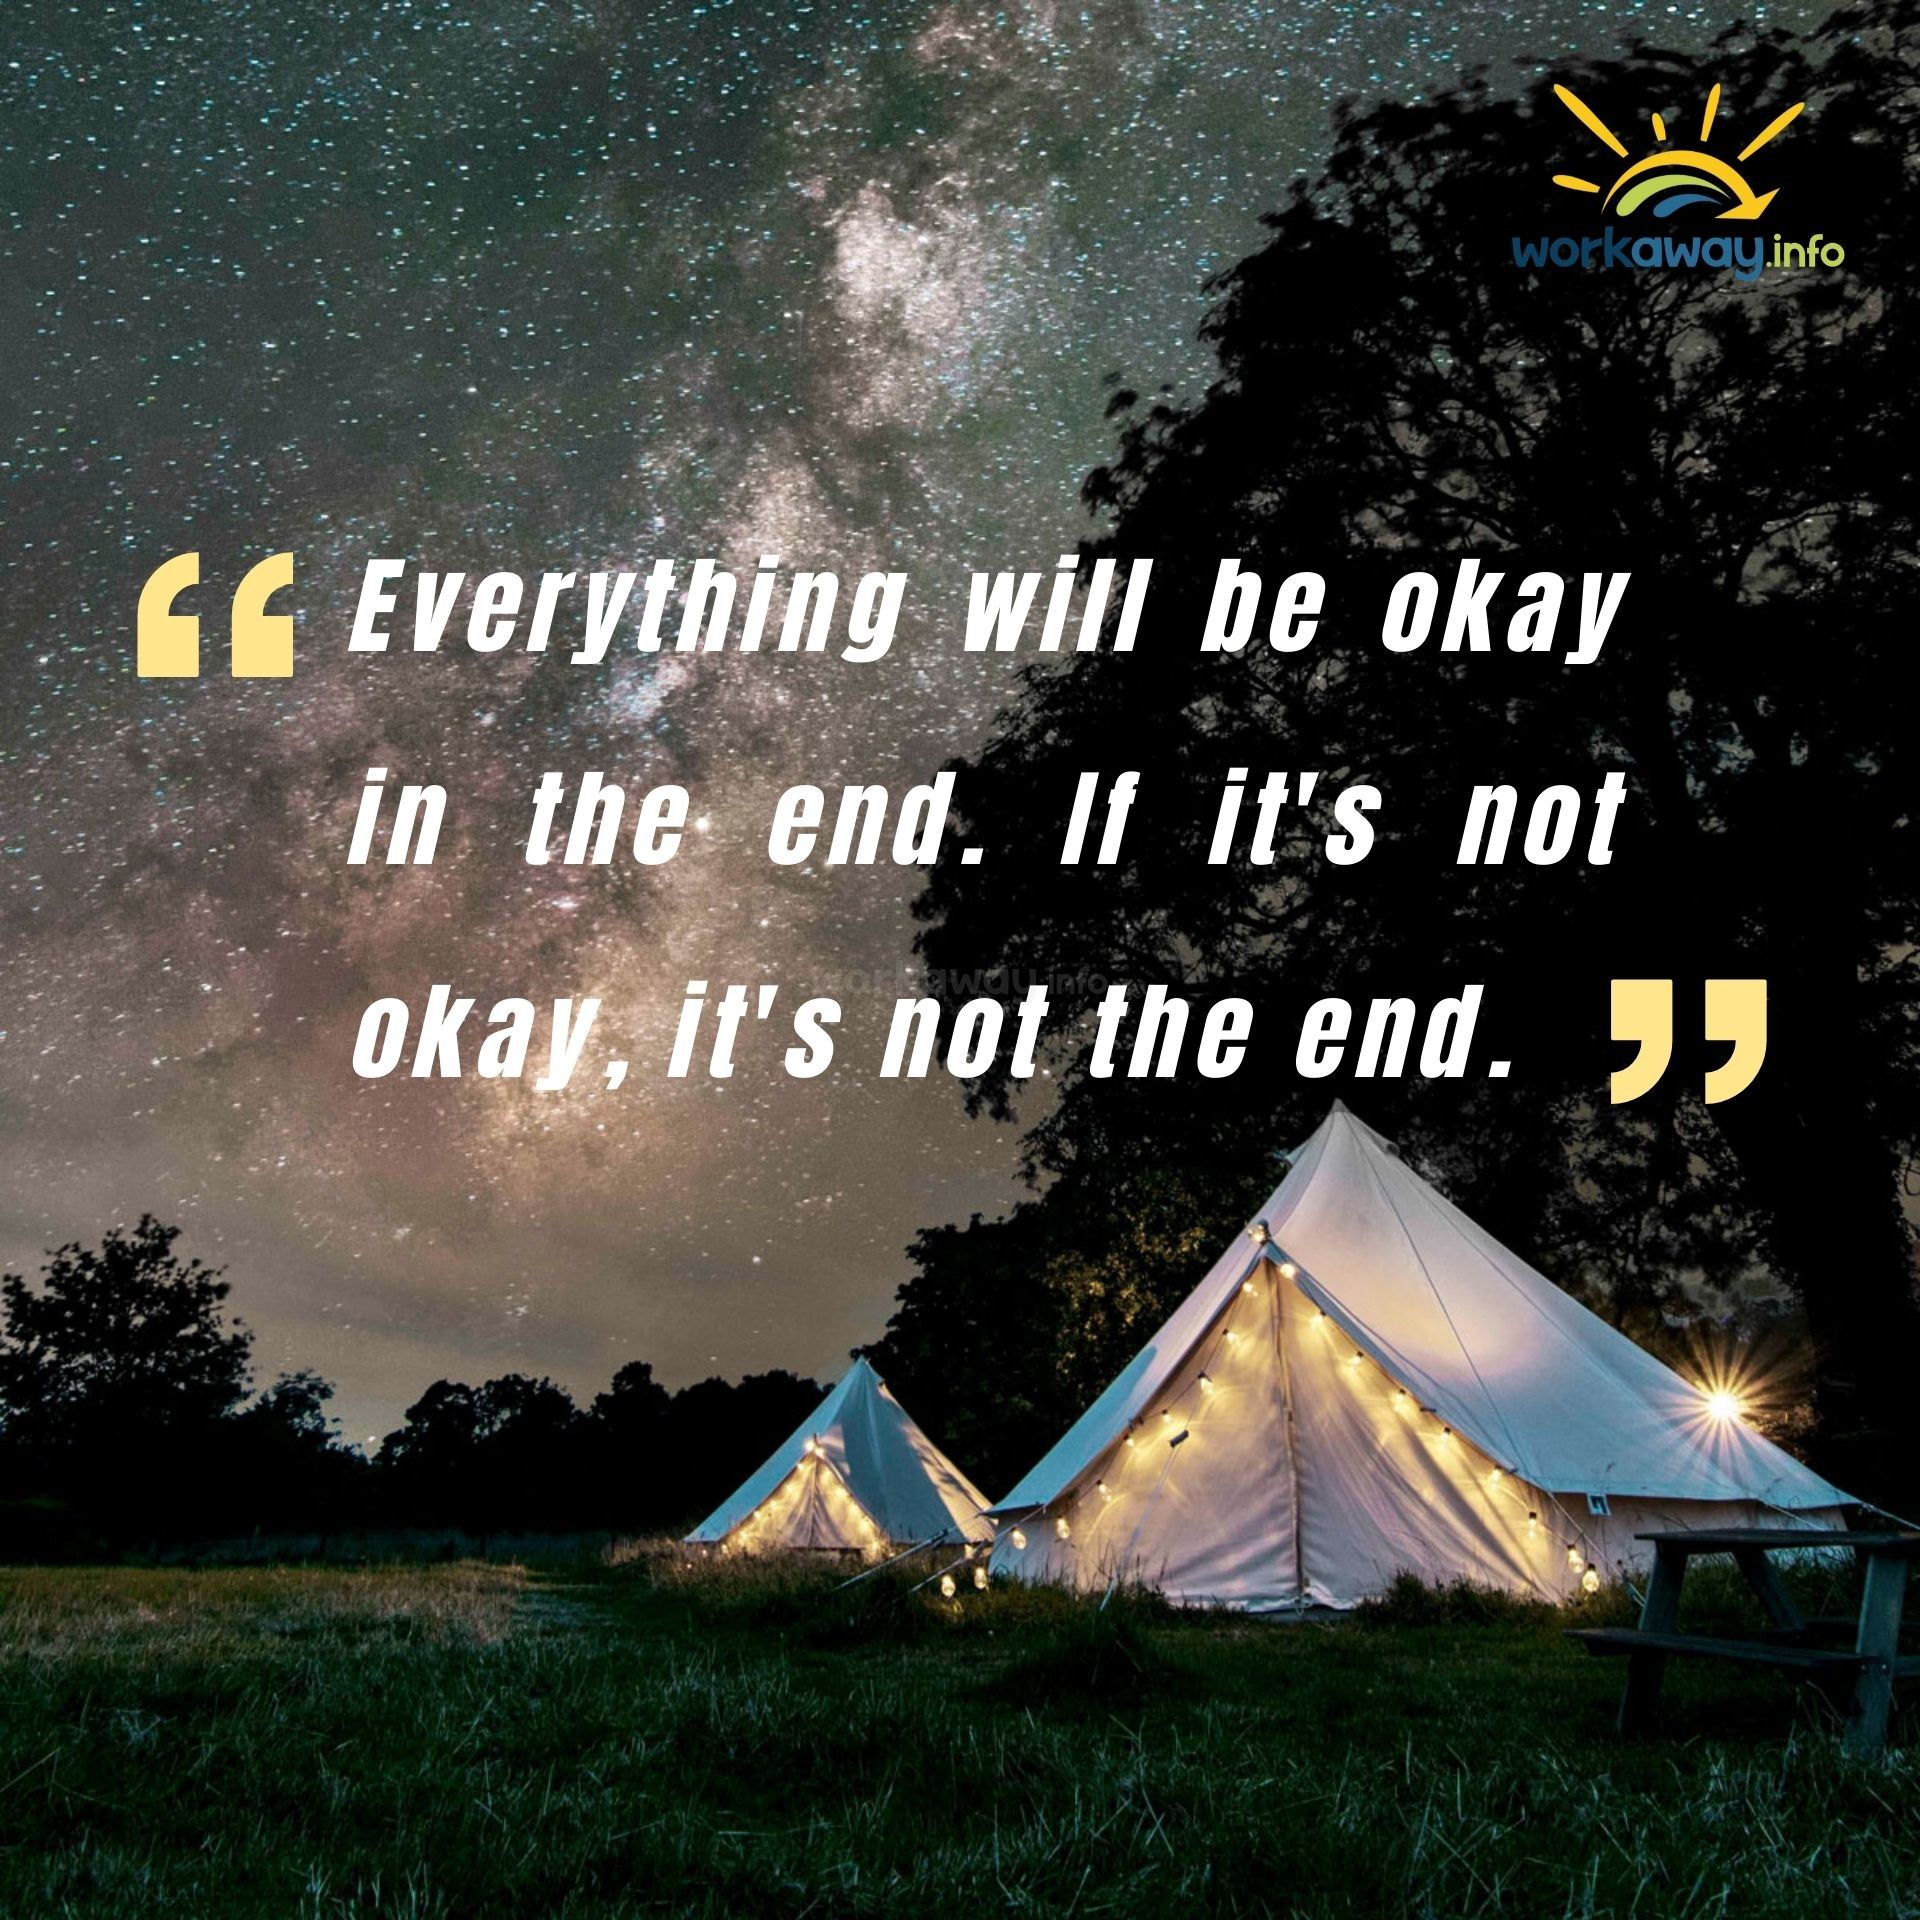 everything will be ok john lenon quote-starry night outside